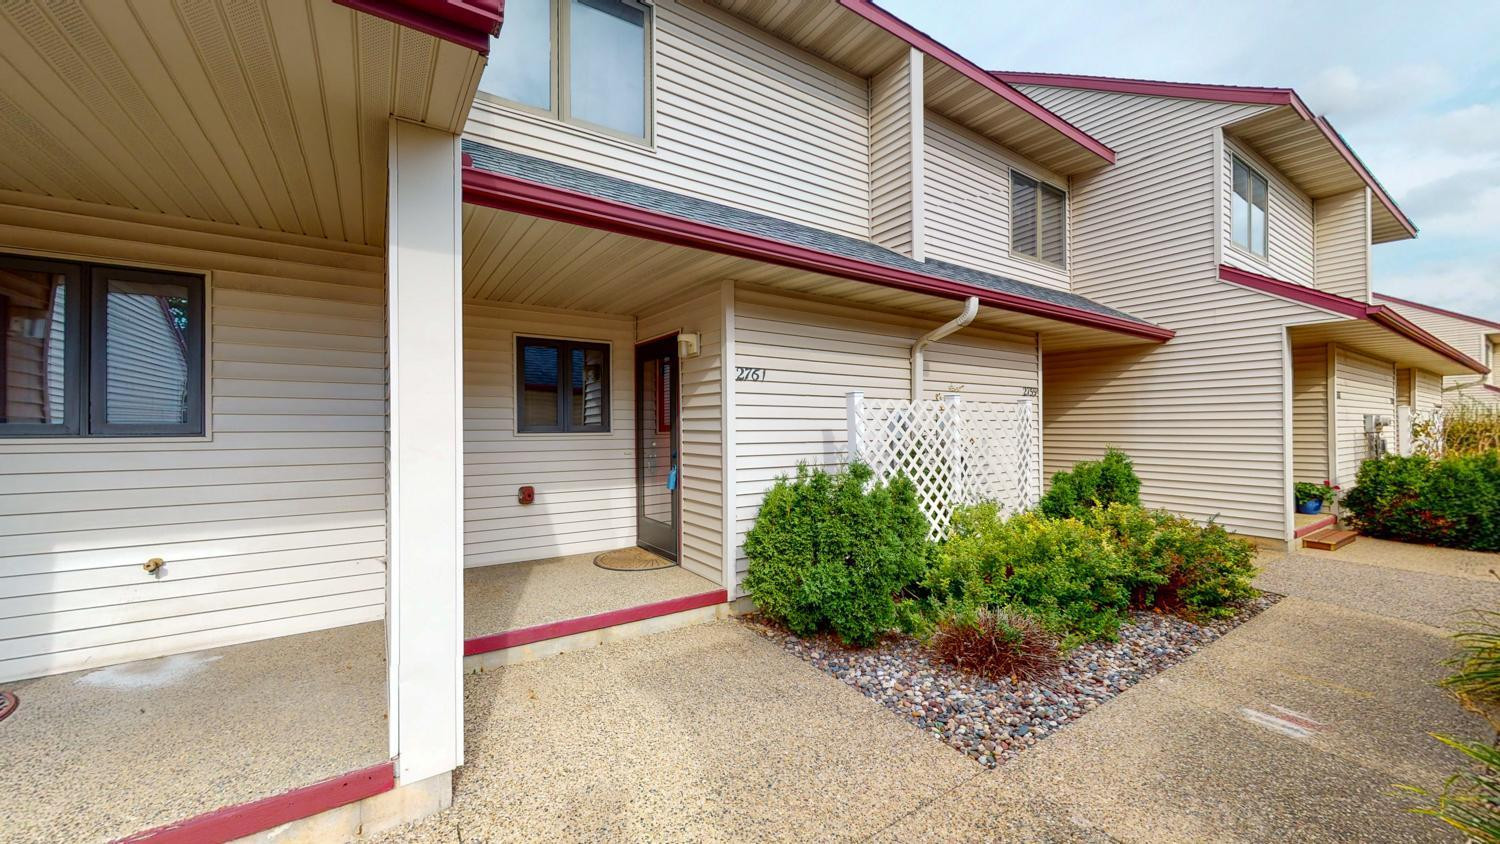 2761 Charles Court NW, Rochester, MN 55901